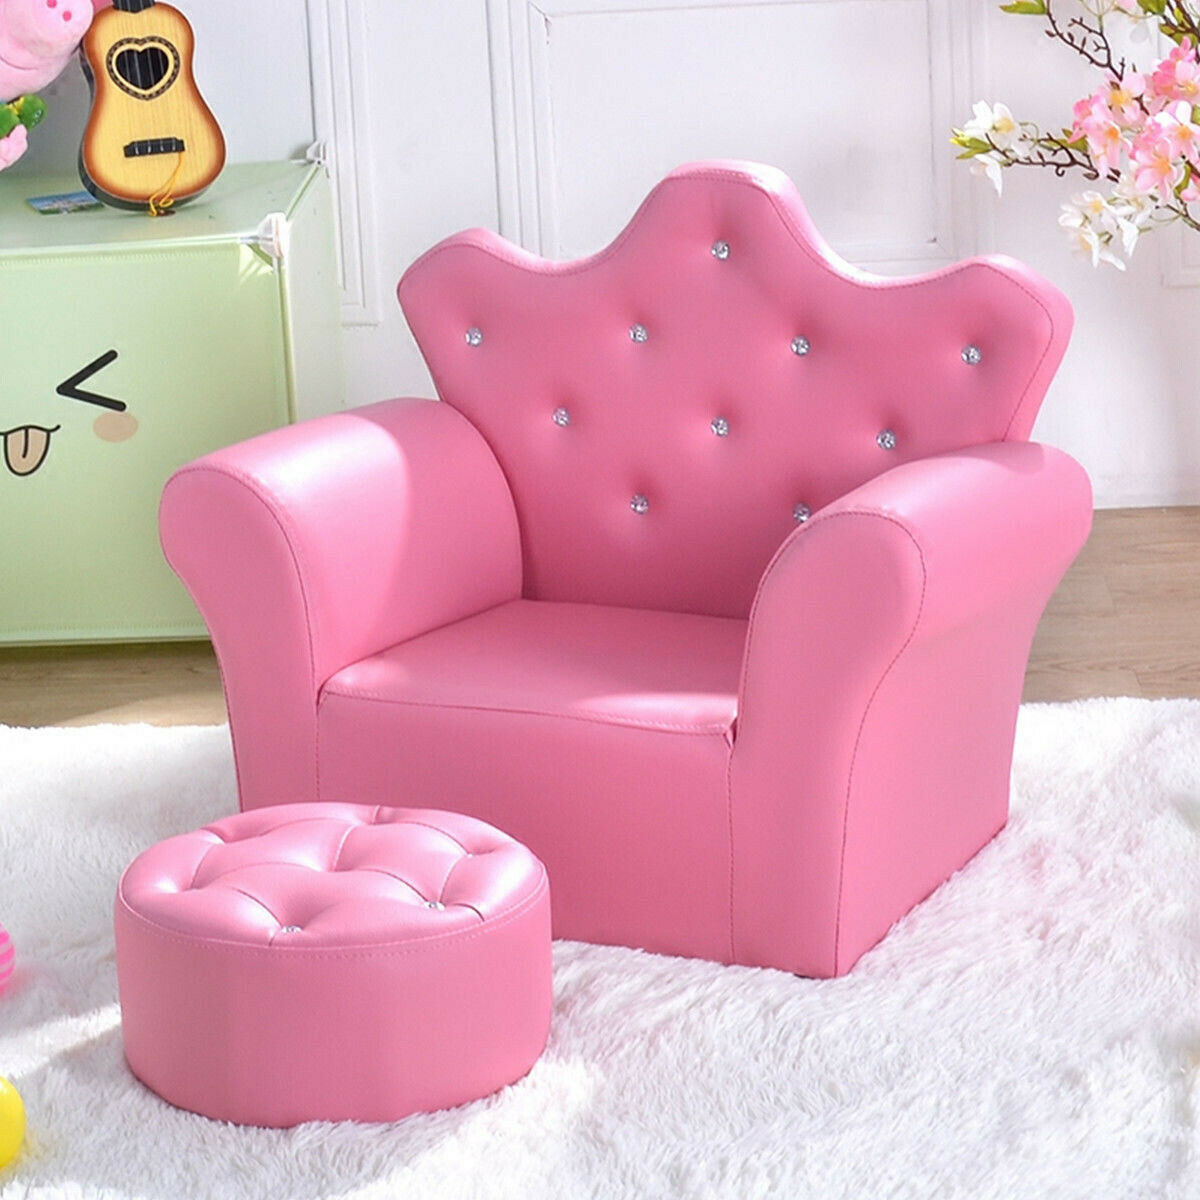 Kids Sofa Couch with Ottoman Pink Armrest Furniture for Toddler Girls Bedroom